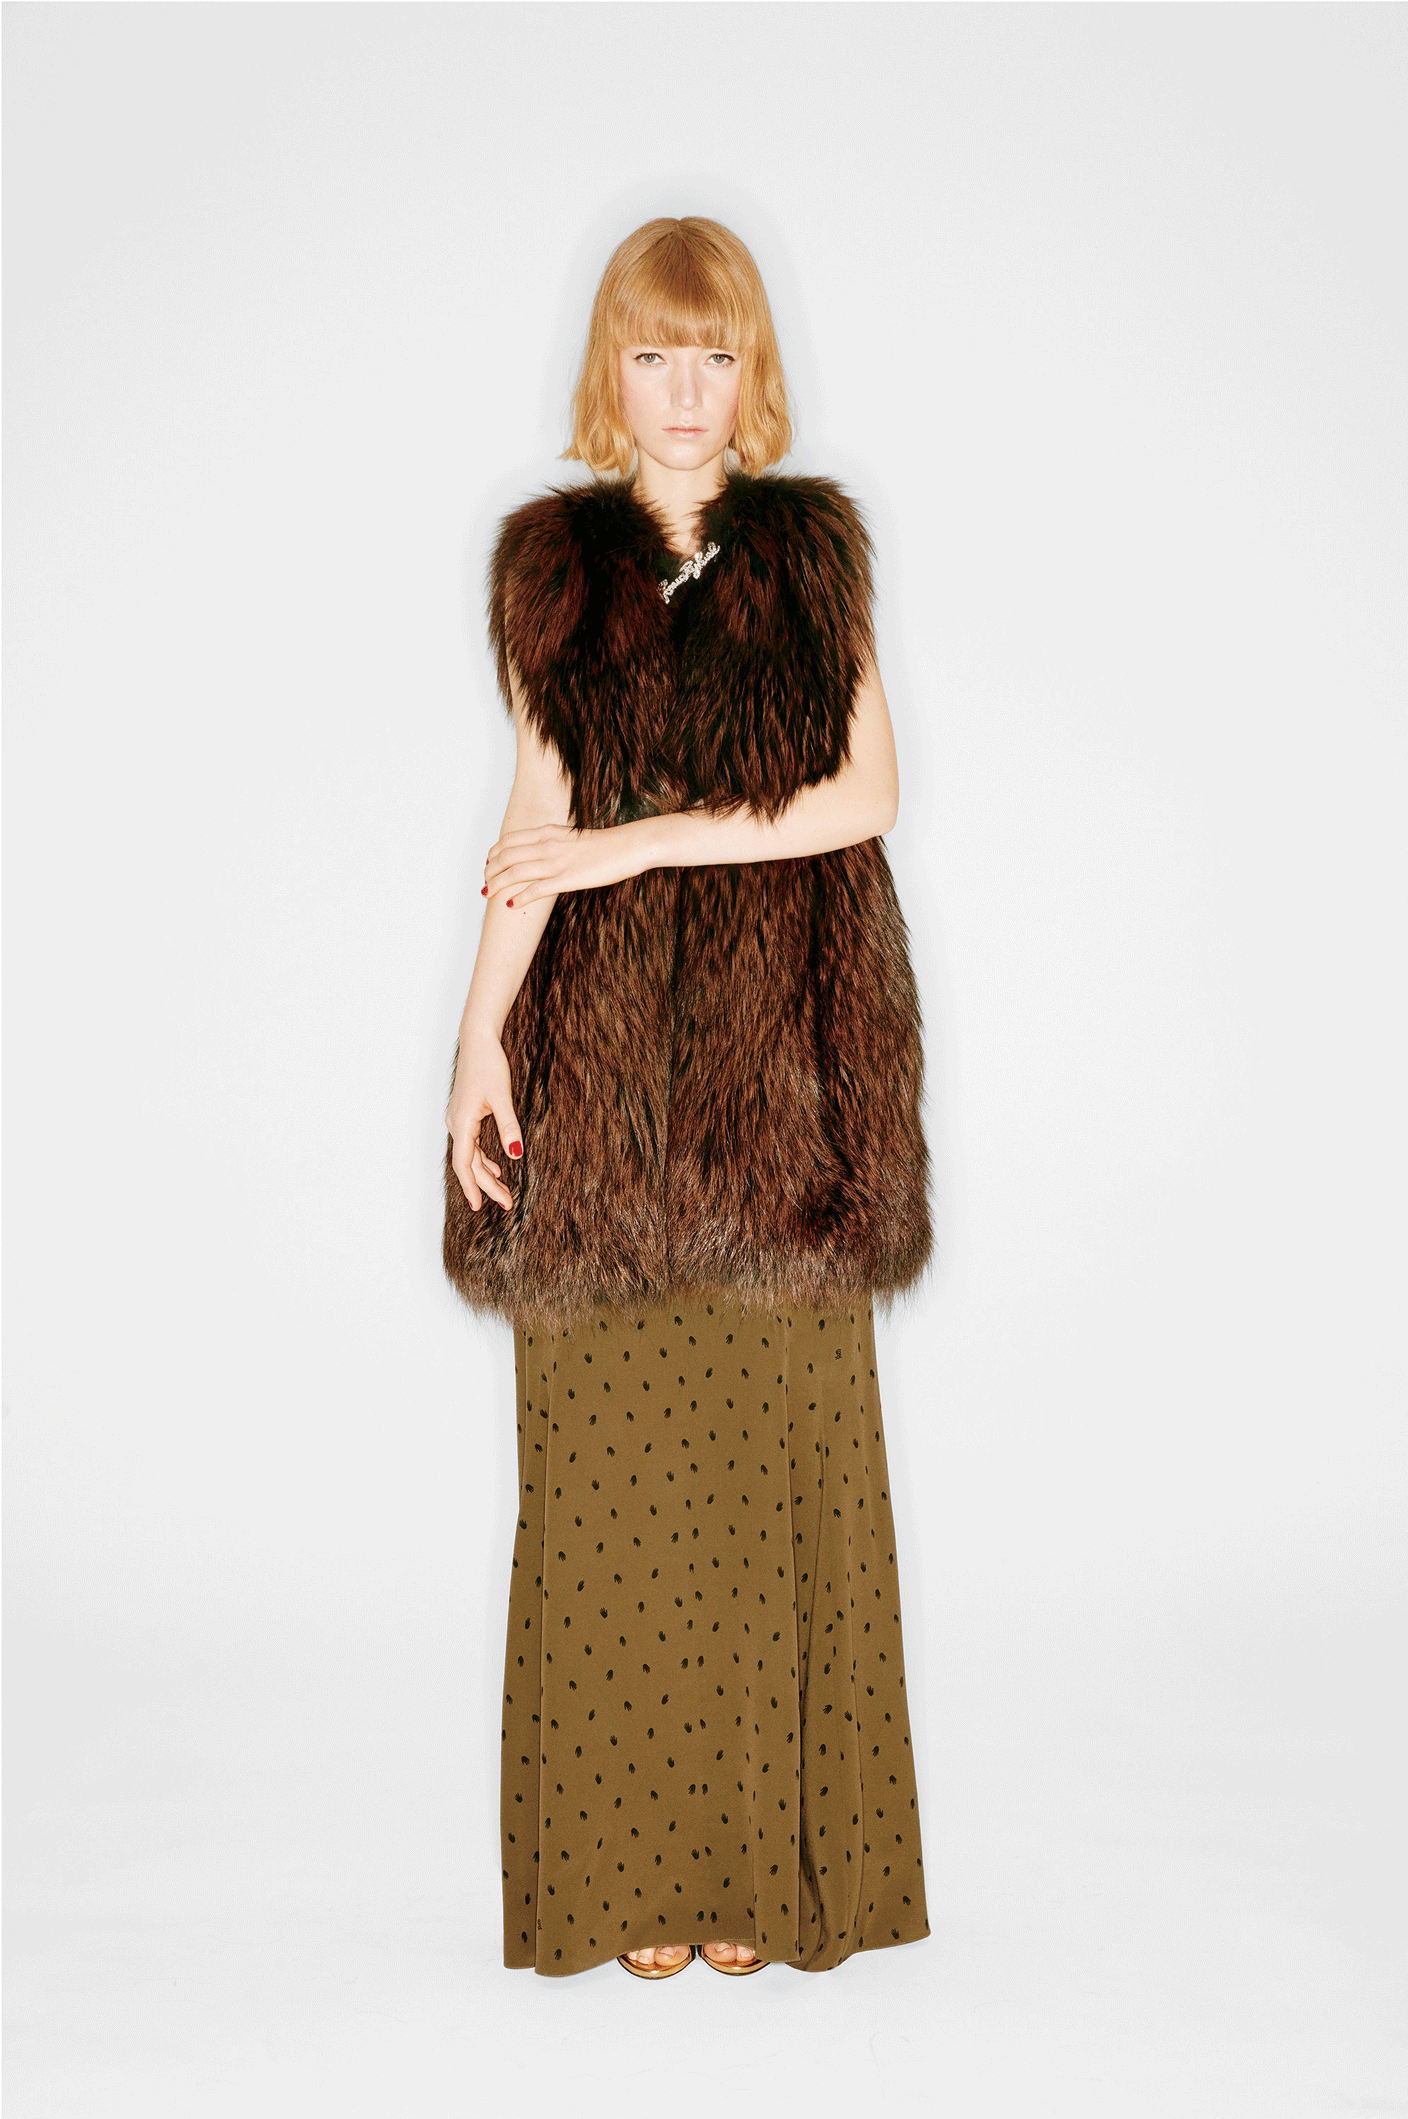 sonia rykiel pre-fall 2016 | @themissprints